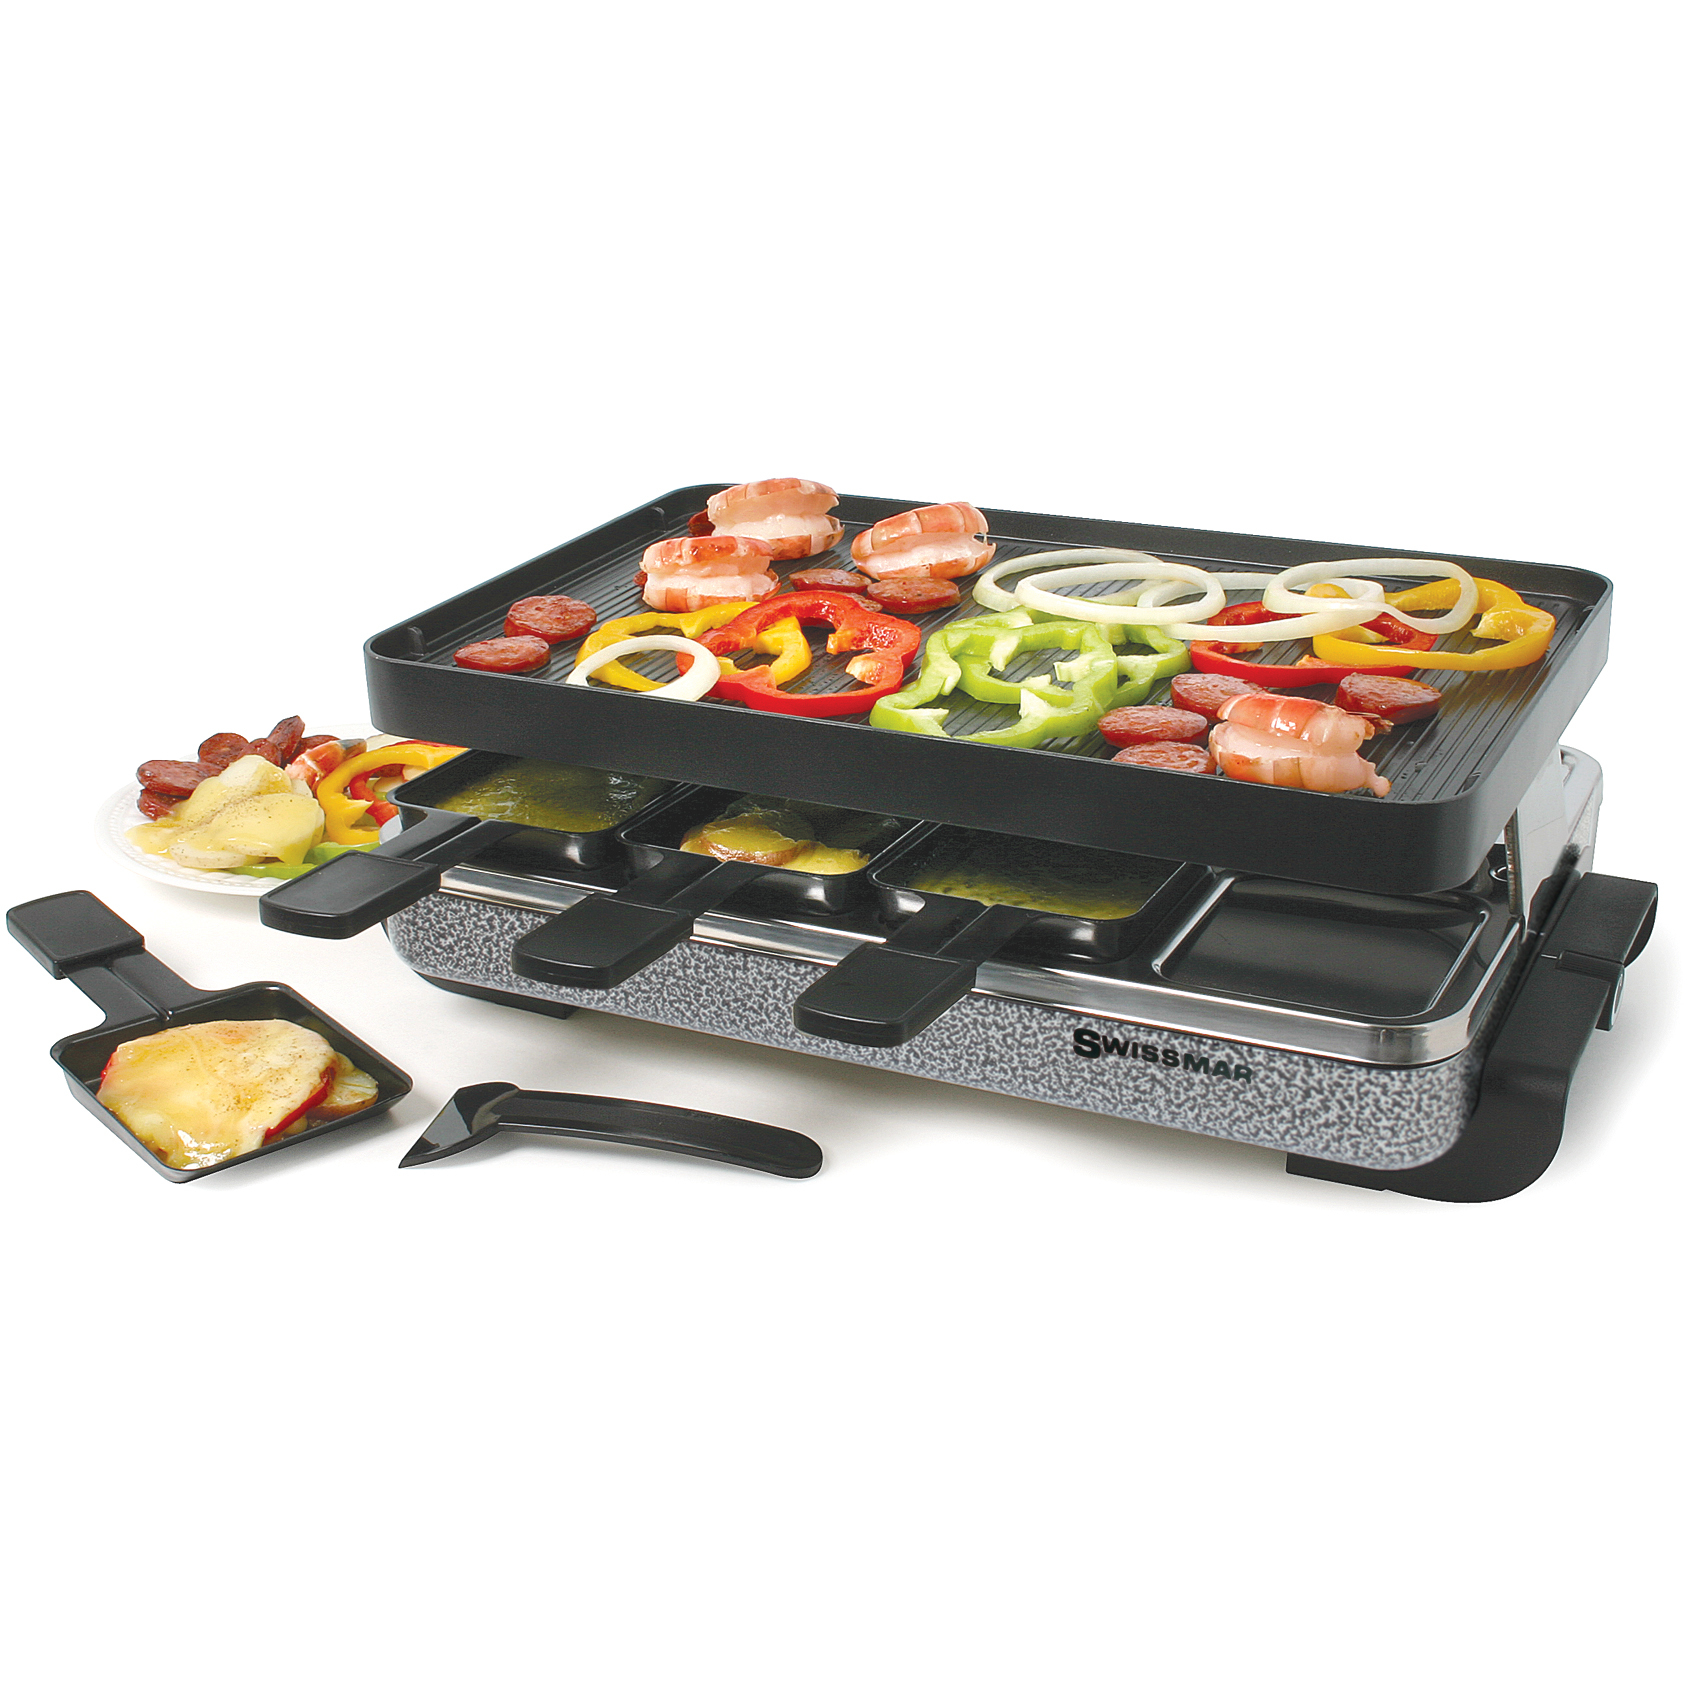 Swissmar 8 Person Black Eiger Electric Raclette Grill with Reversible Cast Iron Grill Plate